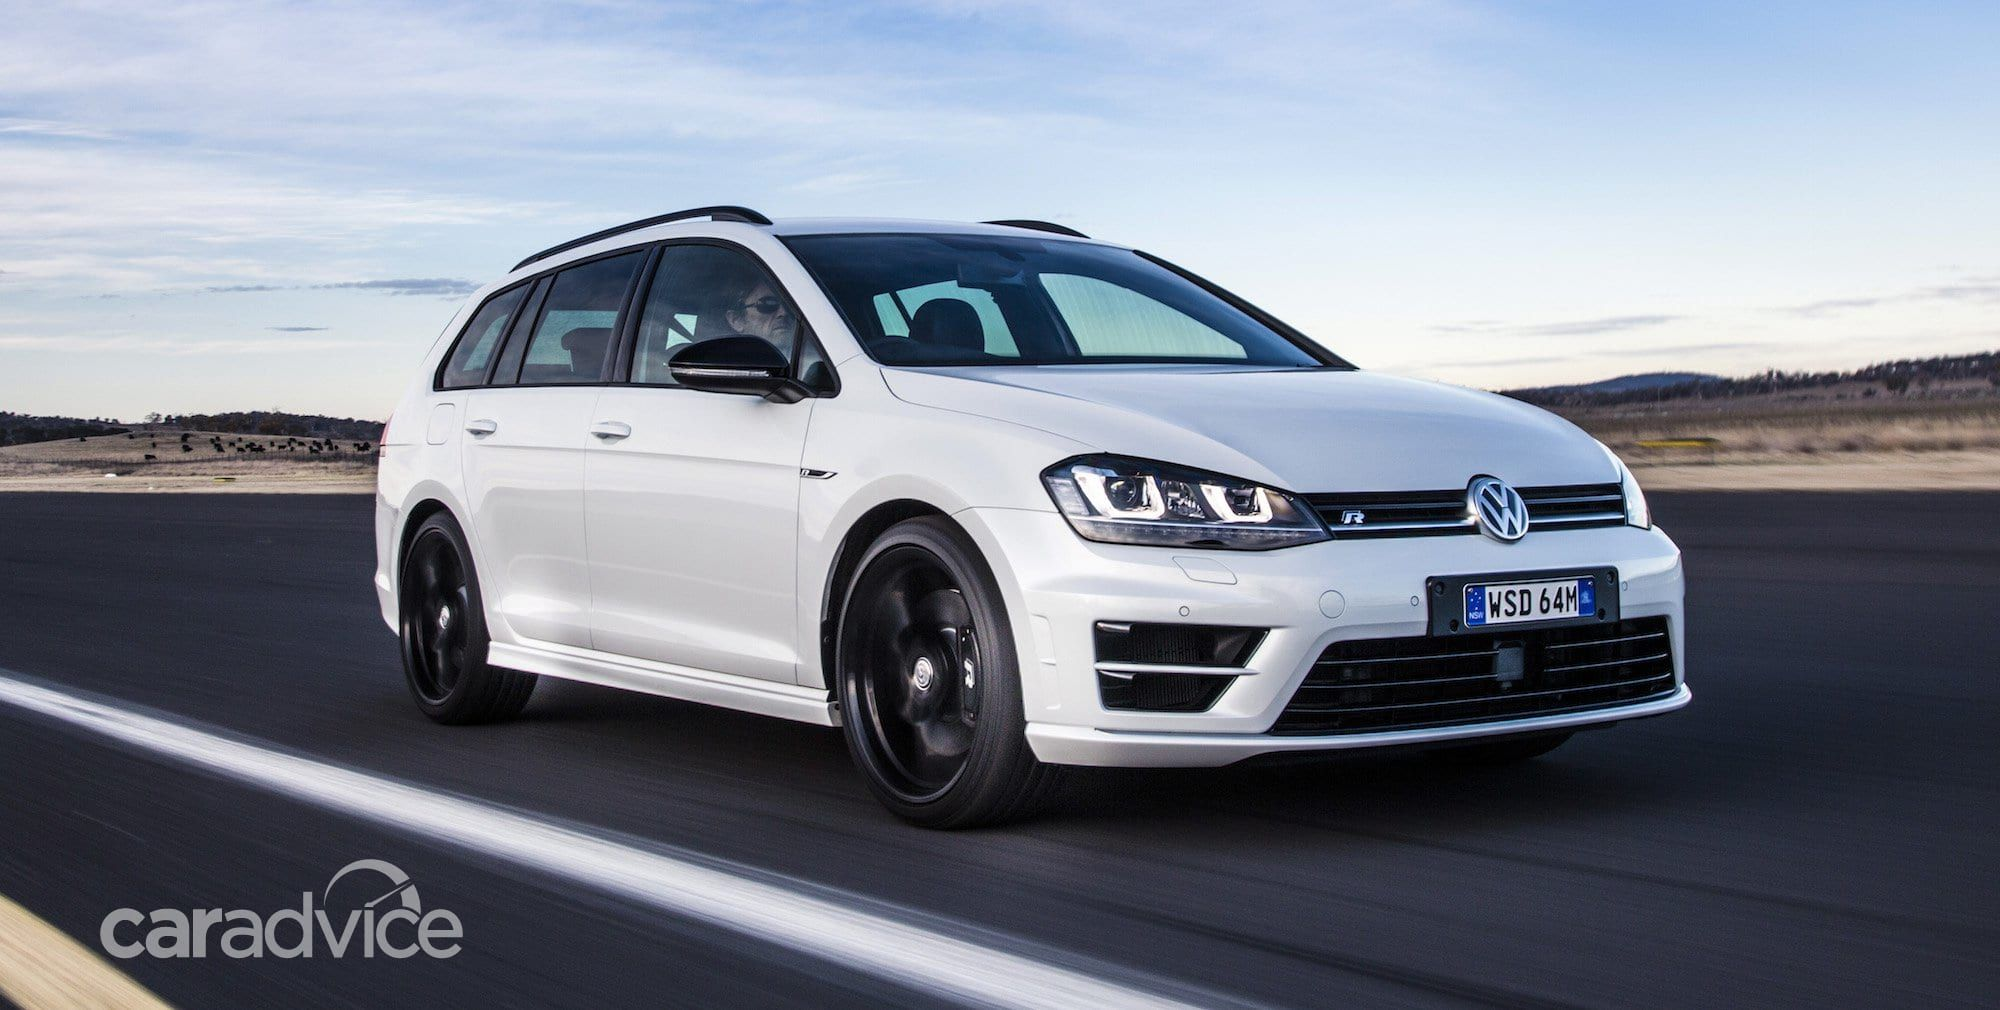 2016 Volkswagen Golf R Wagon Review Caradvice In 2020 Volkswagen Golf R Vw Golf Variant Vw Wagon